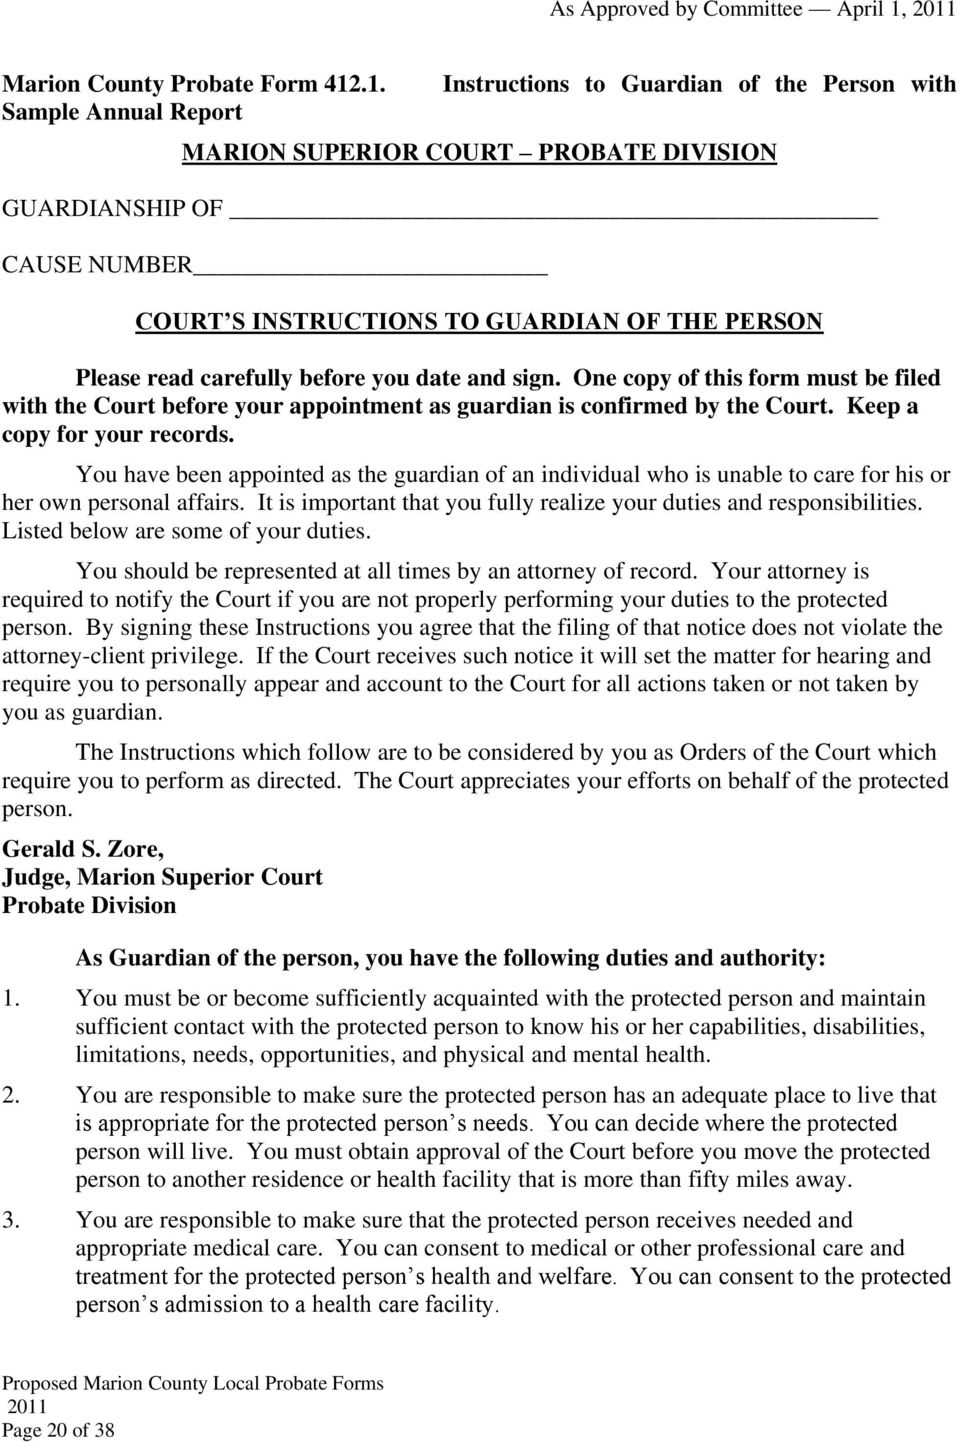 Index Of Marion County Probate Forms Pdf